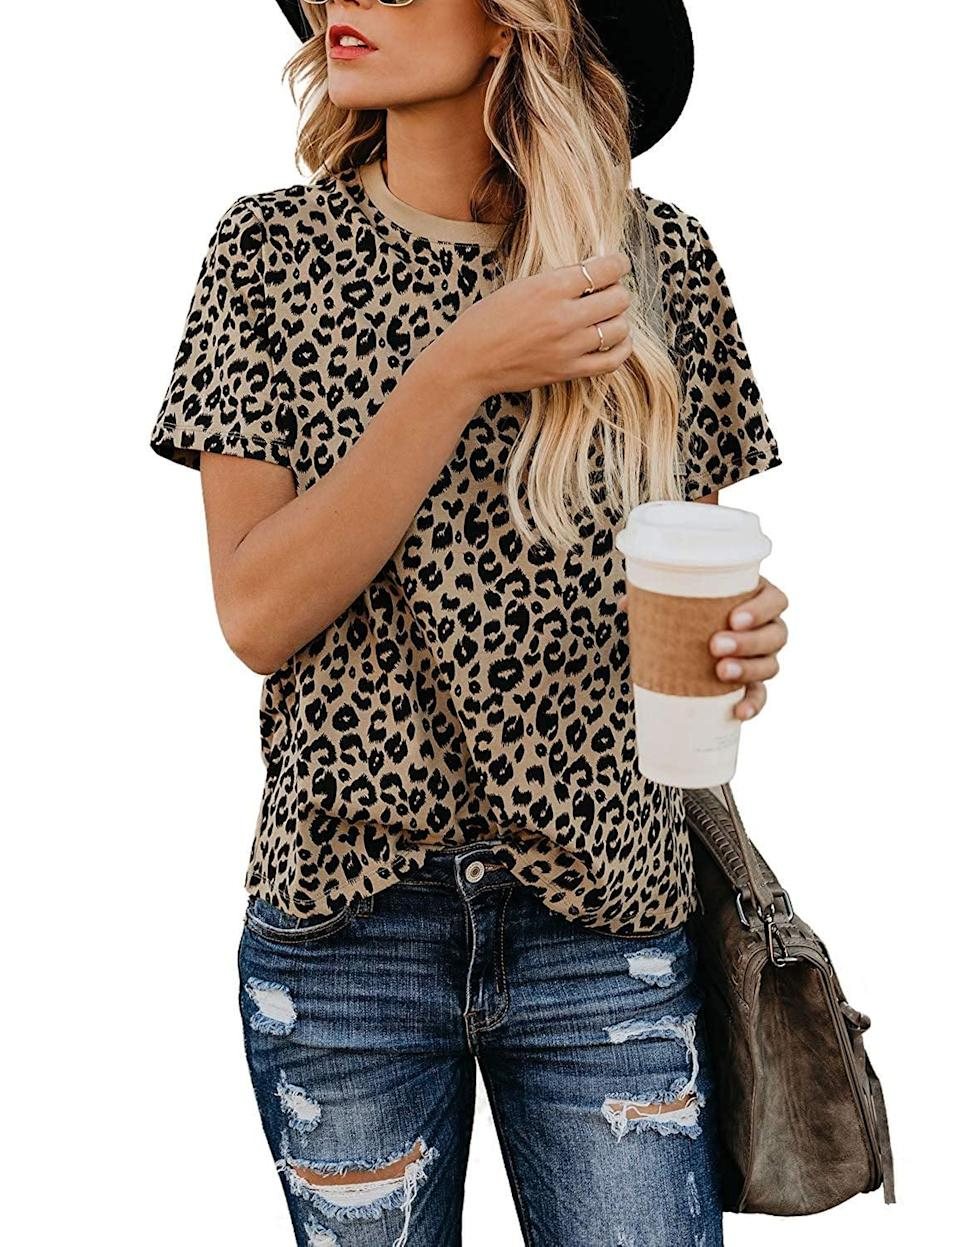 <p>For casual days, throw on this <span>BMJL Leopard Short-Sleeved Shirt</span> ($17, originally $19).</p>